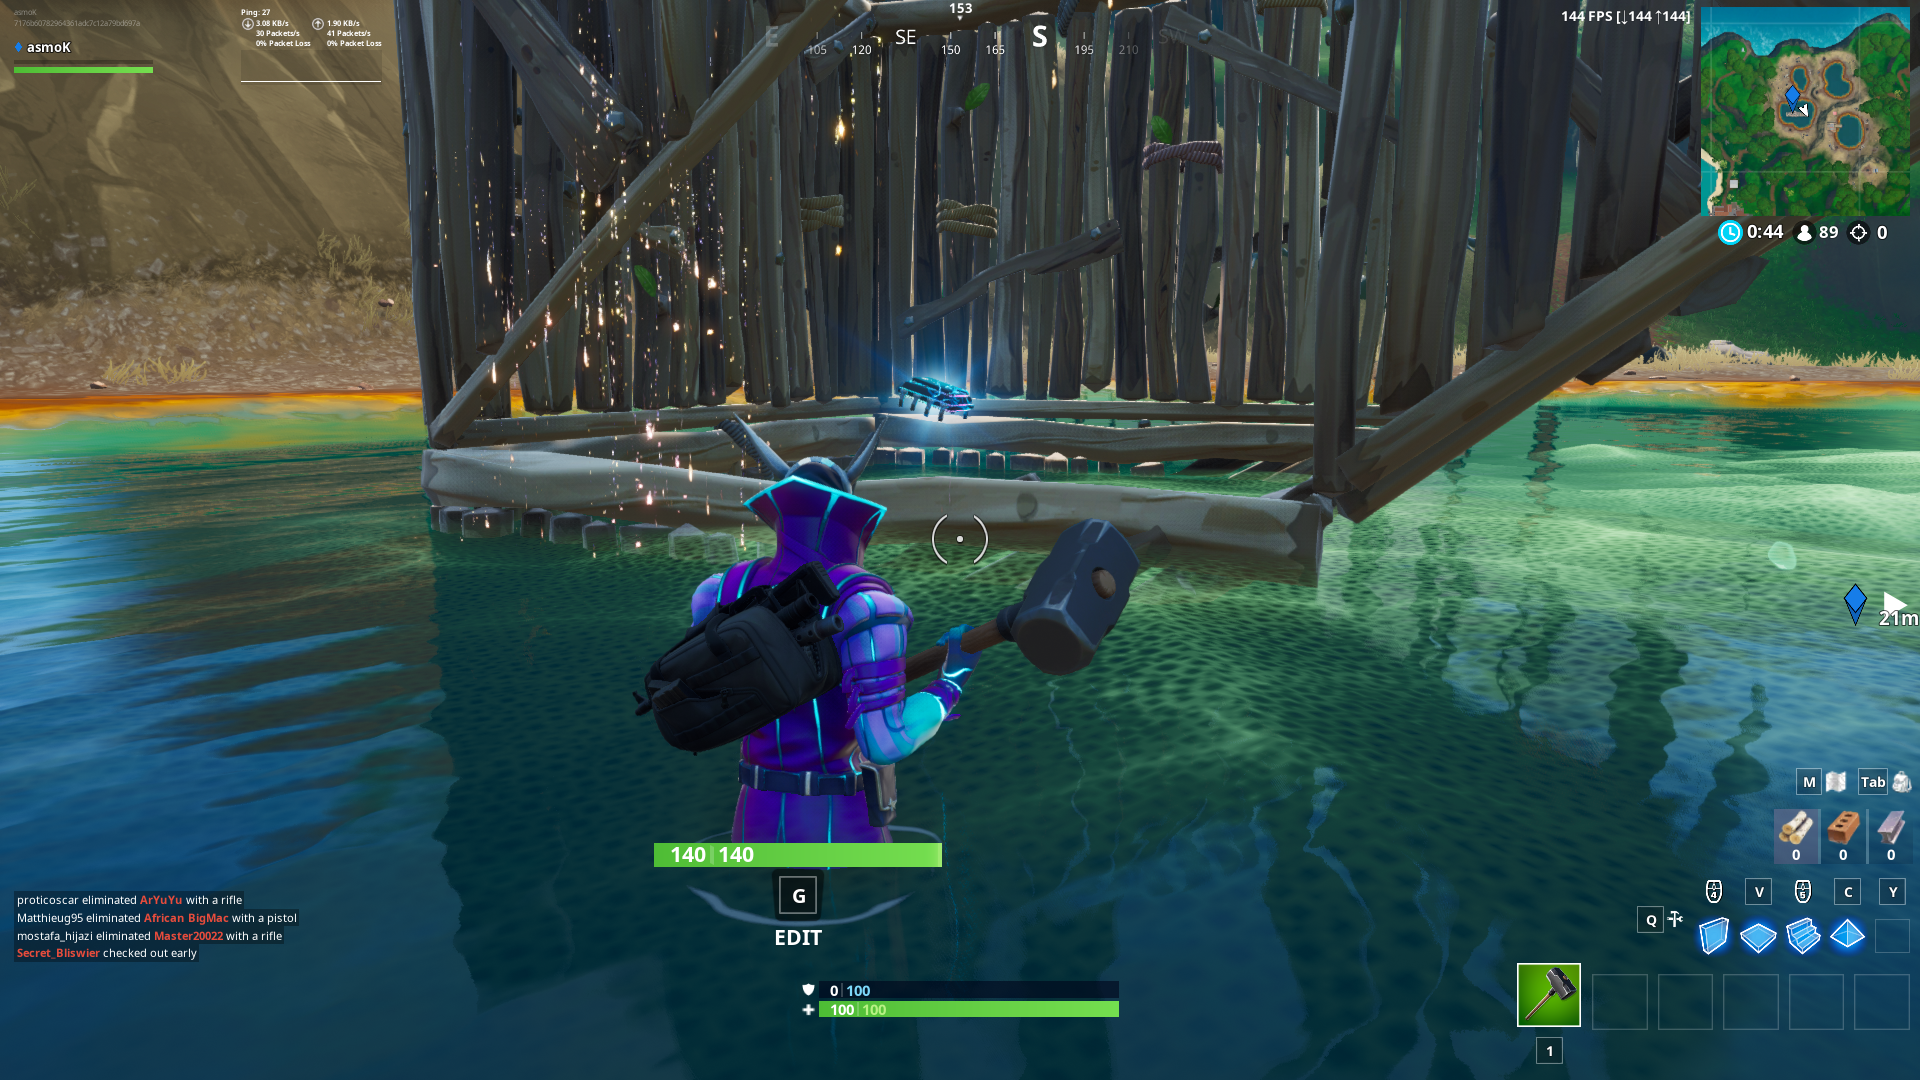 Fortnite Fortbyte 17 Location Found Inside A Wooden Fish Building